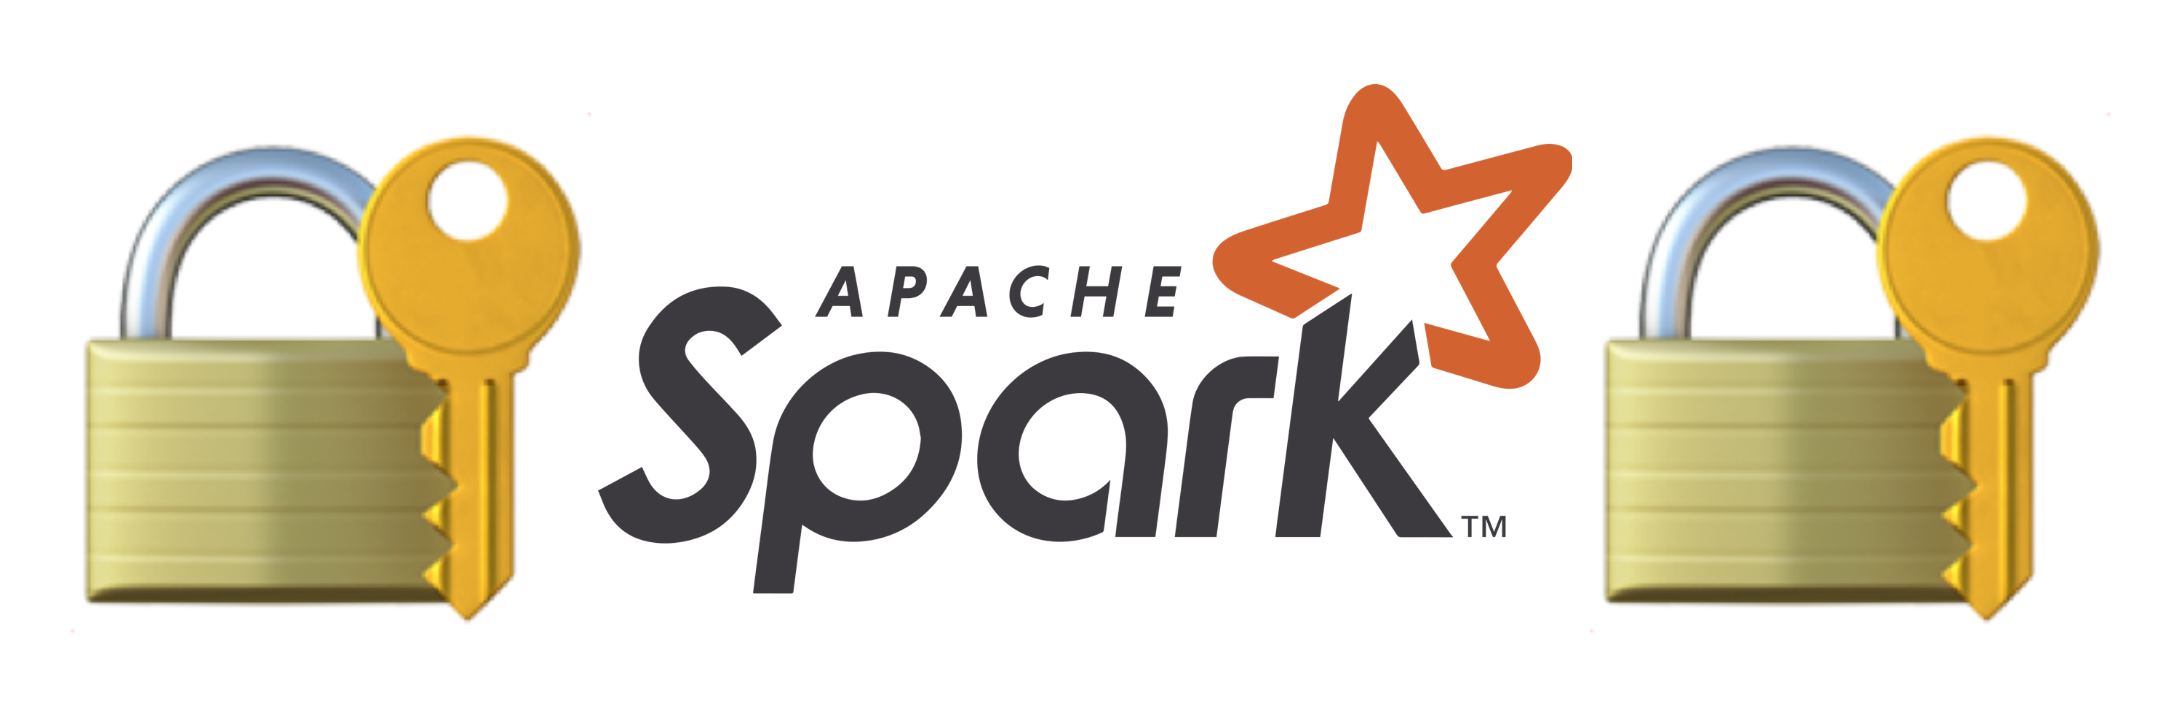 Getting Started with Apache Spark by Analyzing Pwned Passwords